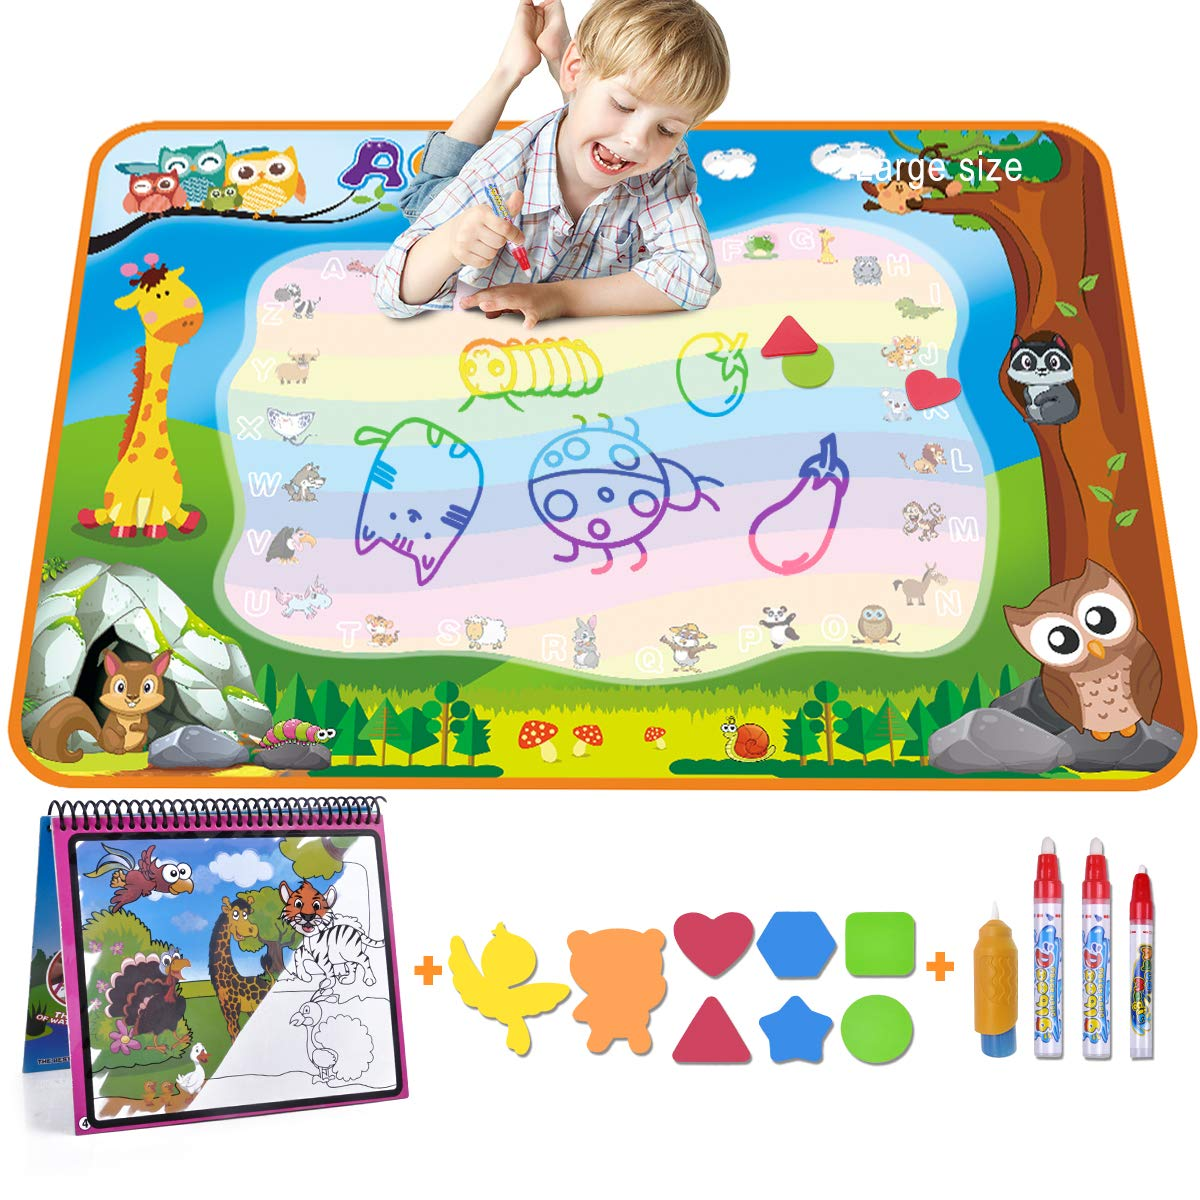 Aqua Magic Doodle Mat Large Water Drawing Mat for Kids Gifts Educational Toy Toddler Painting Board